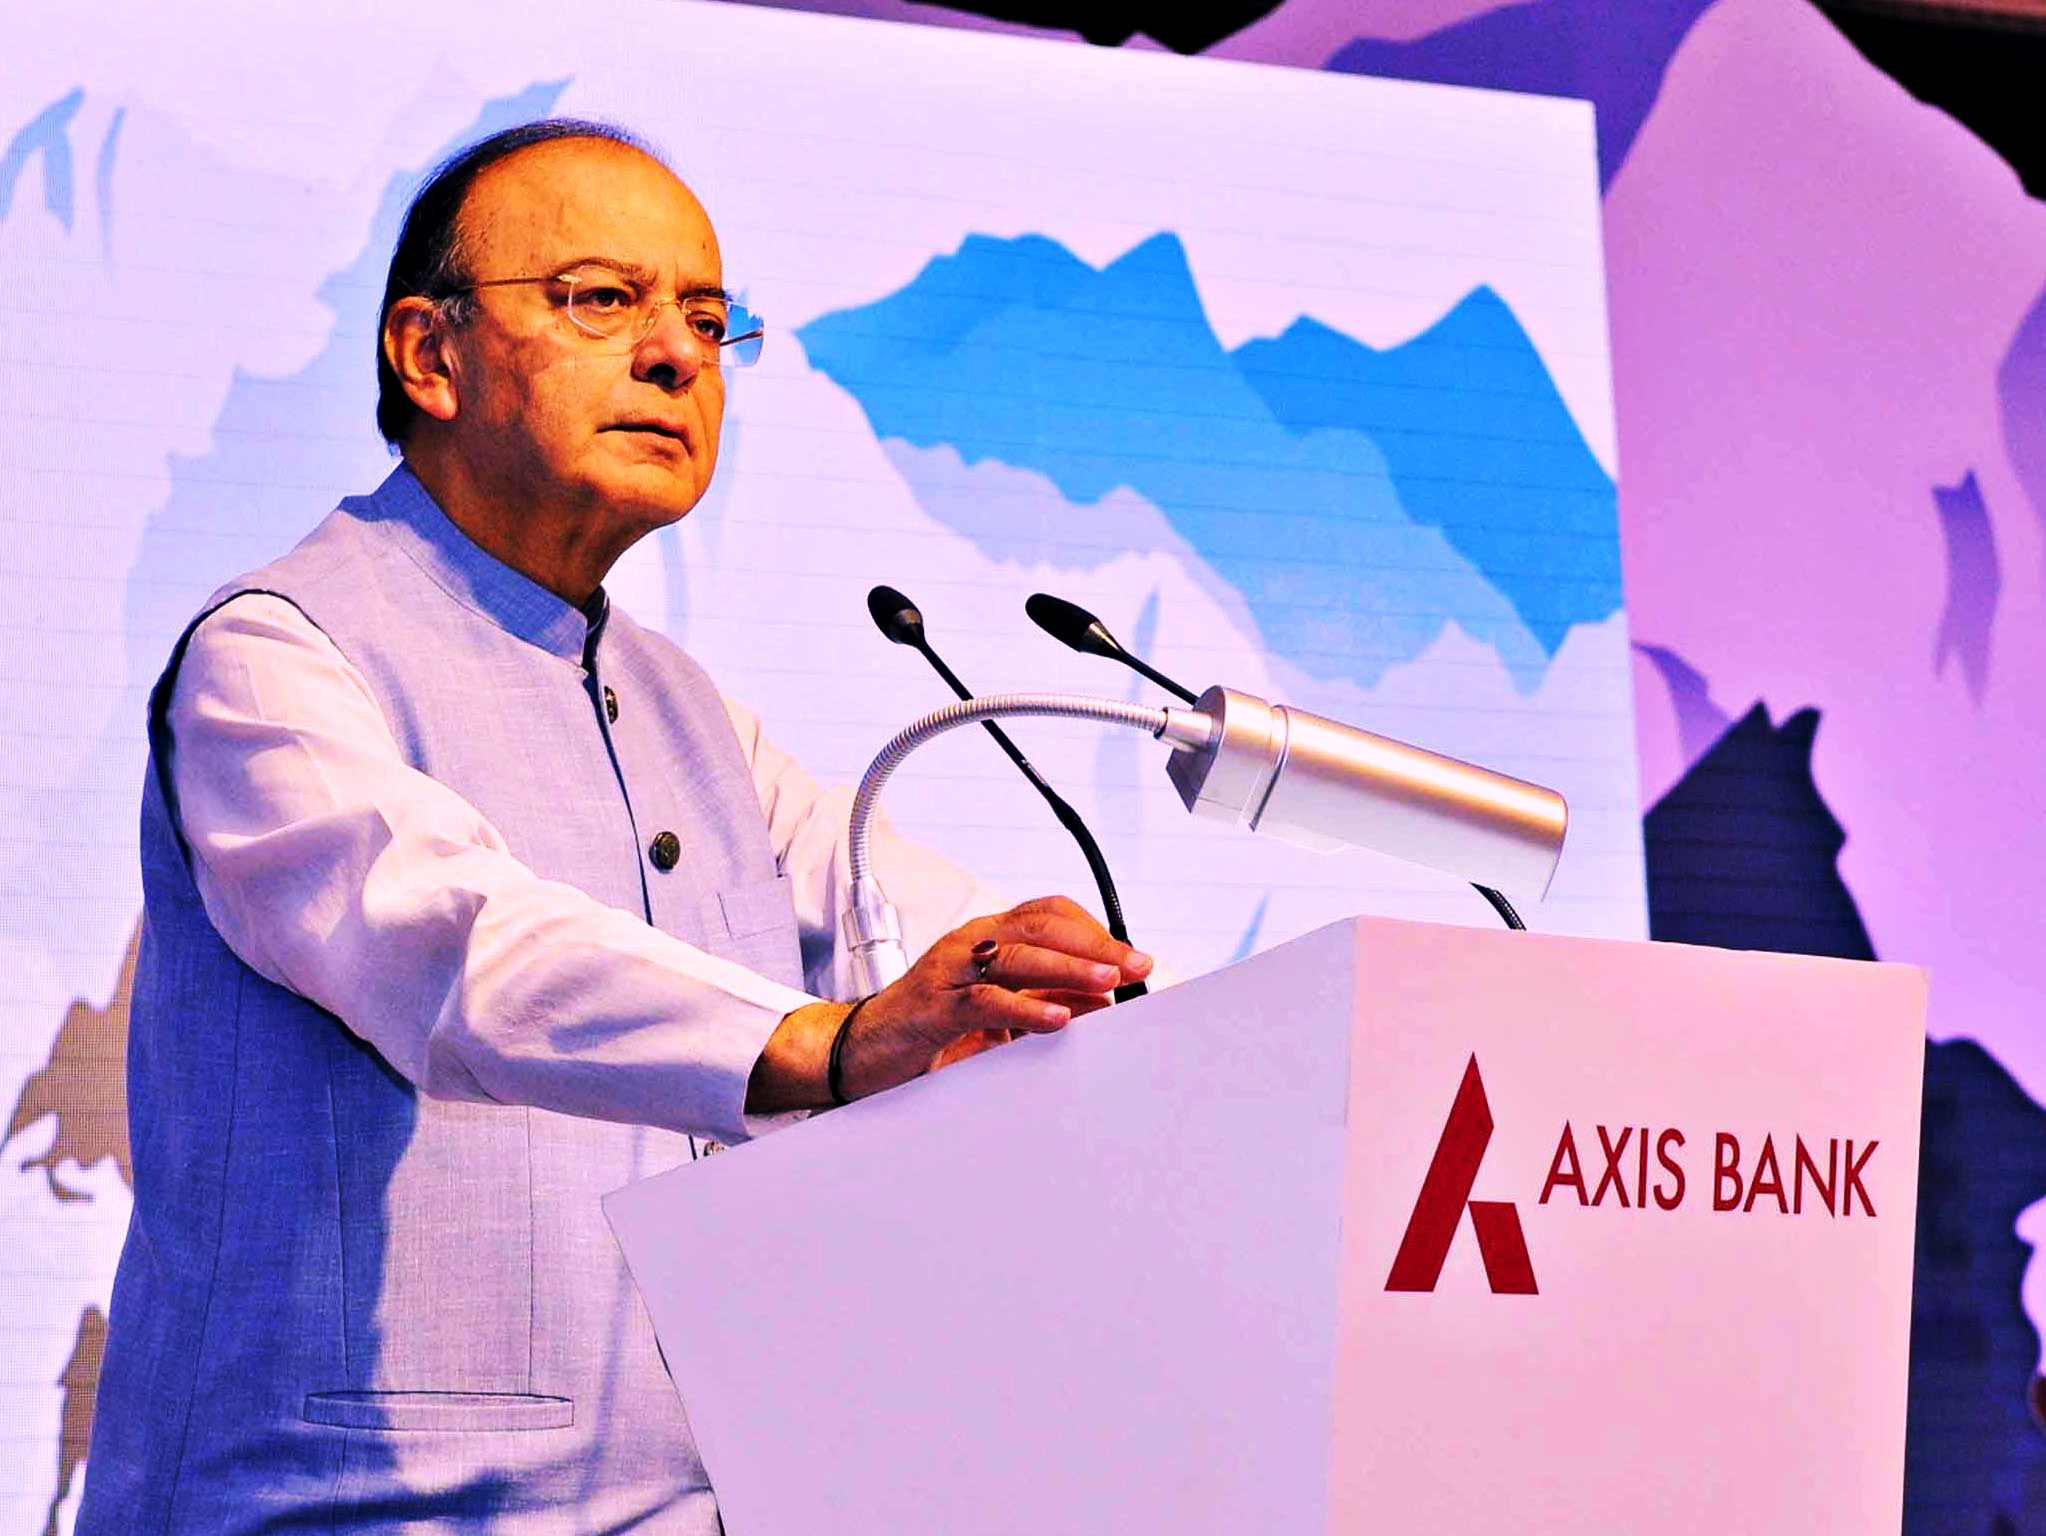 Union Minister for Finance and Corporate Affairs Arun Jaitley addressing the launch of the Axis Bank CSR project in New Delhi on September 26, 2017. Credit: PIB